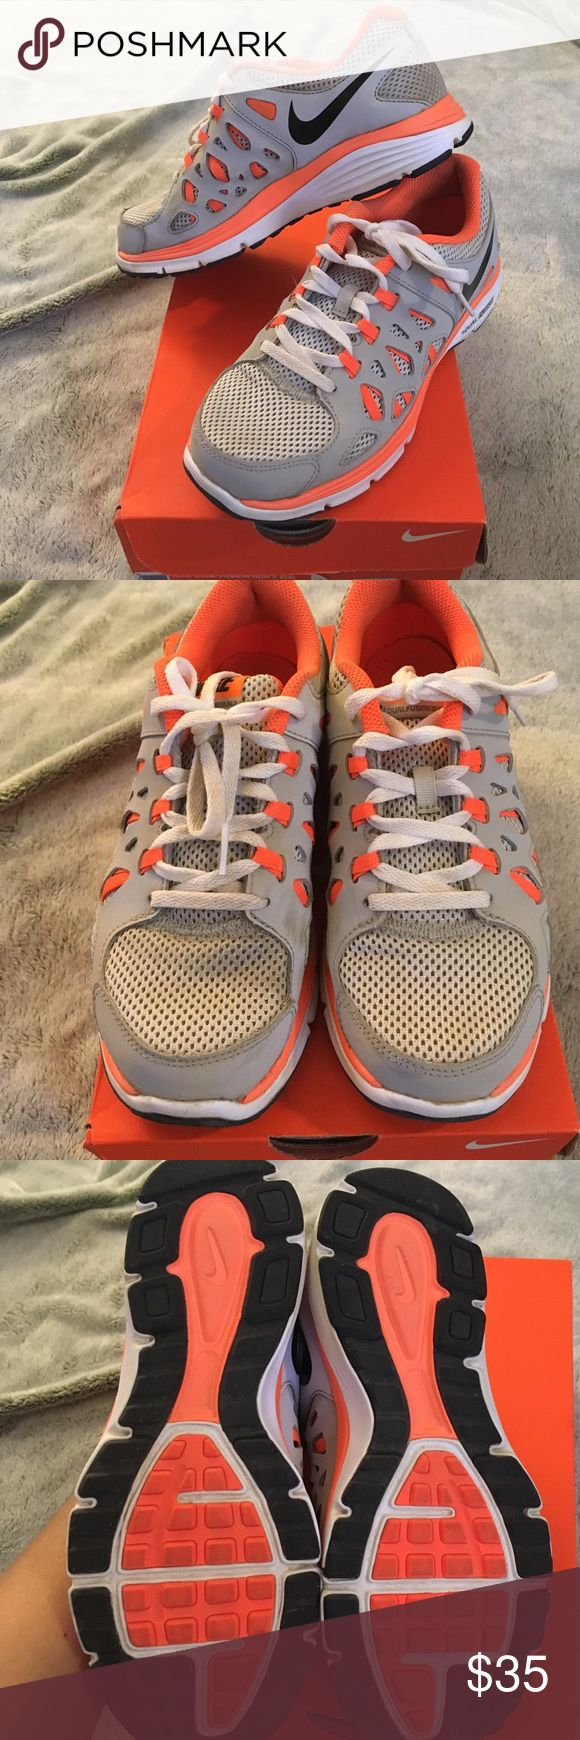 Nike Dual Fusion Run 2 (GS) grey/orange youth 4.5 Barely used Nike Dual Fusion Run 2. Size youth 4.5Y but fit me (I'm a 6/6.5 womens). Gray with bright neon orange and white with a black nike swoosh logo. Nike Shoes Sneakers